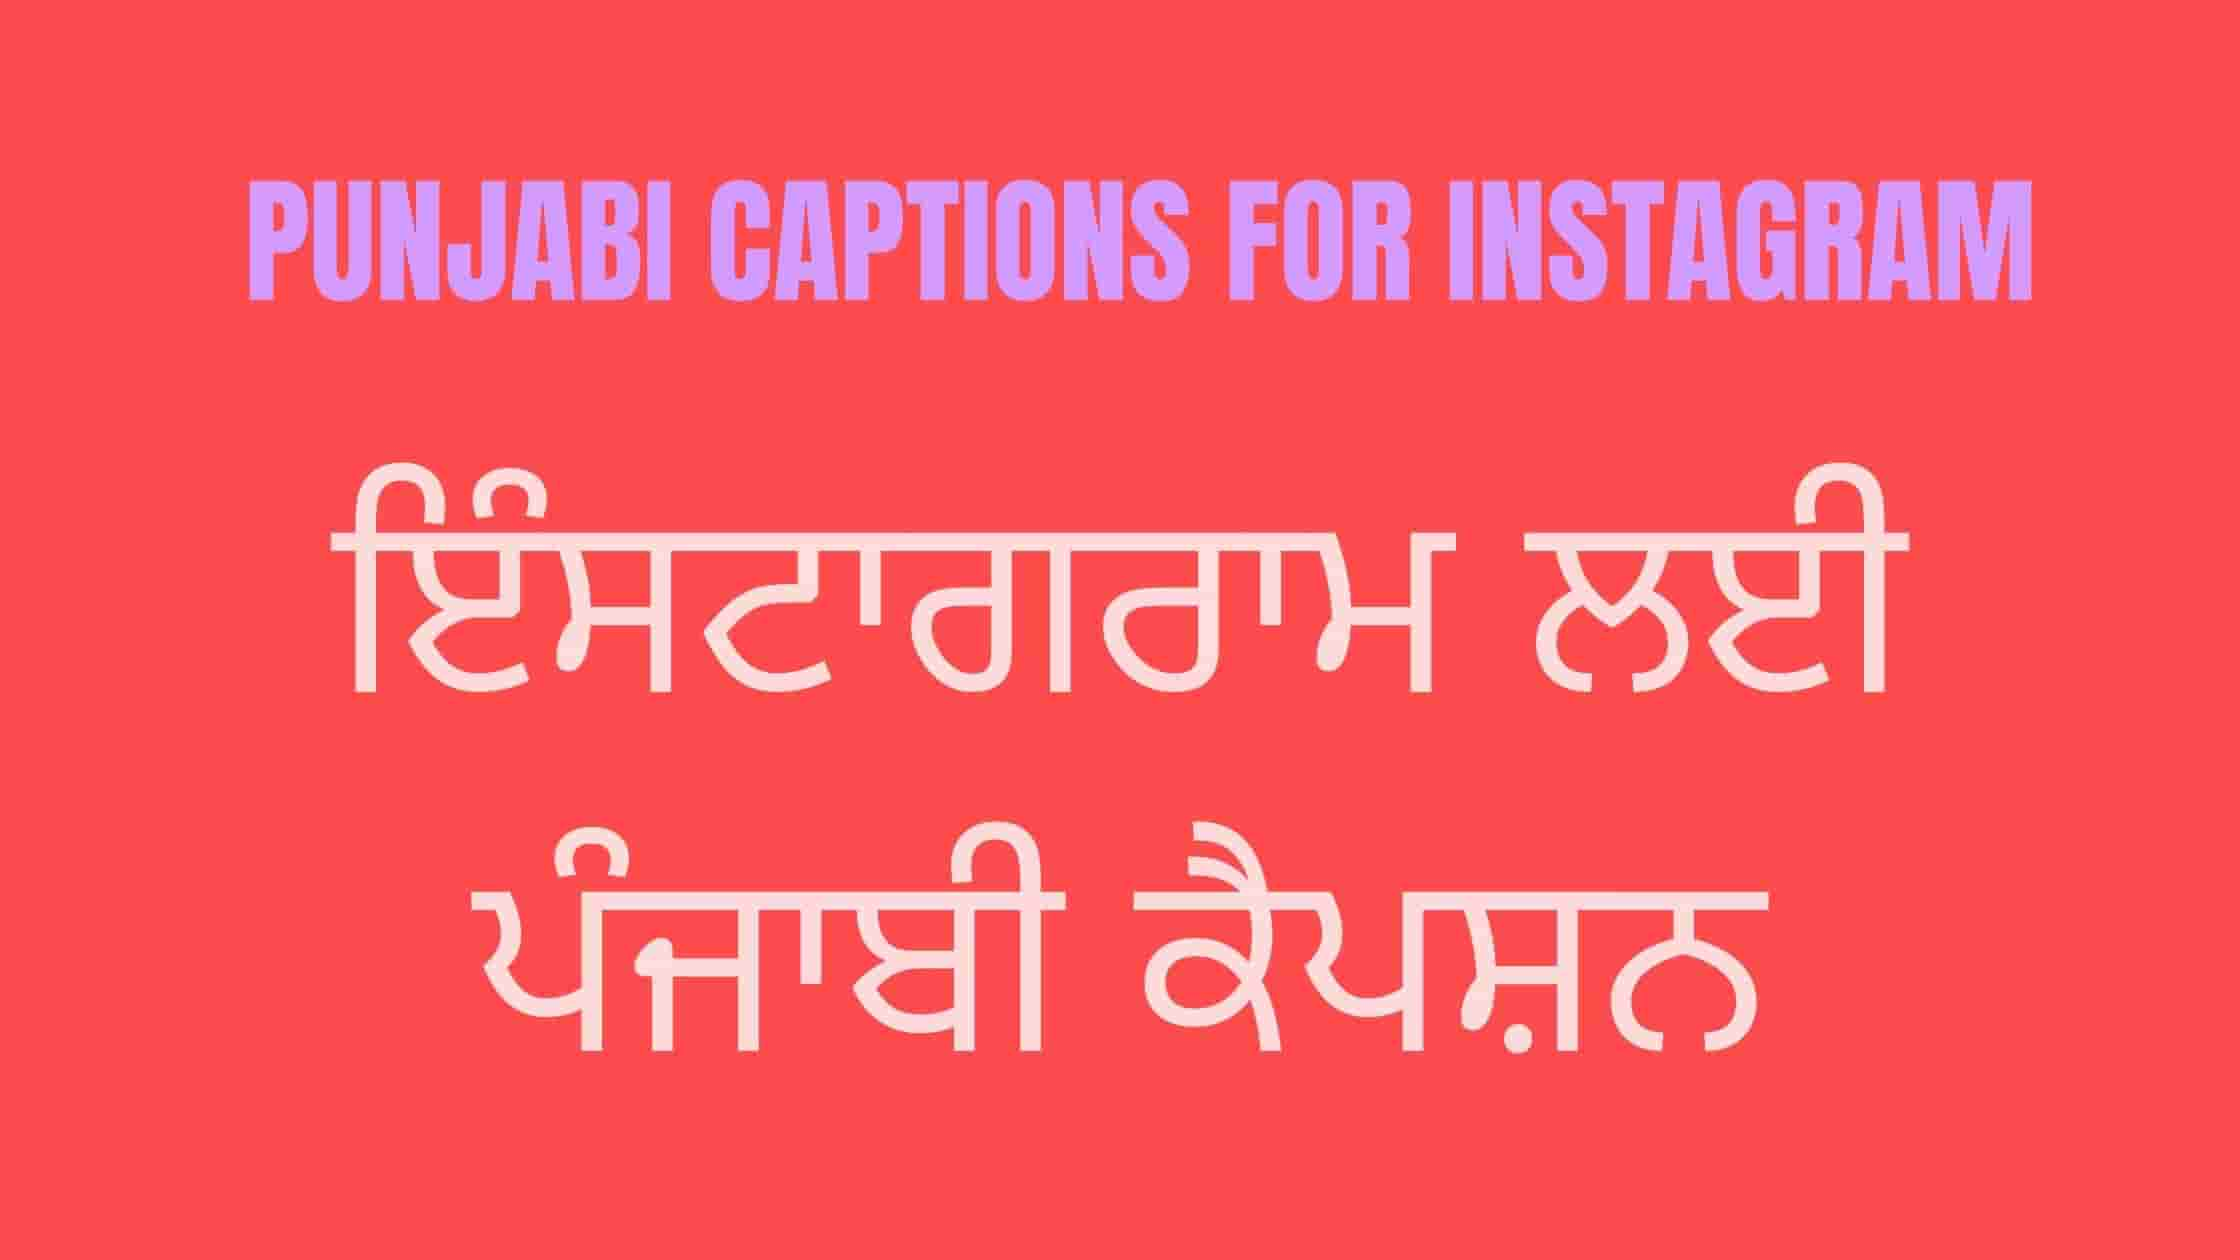 Punjabi Captions for Instagram